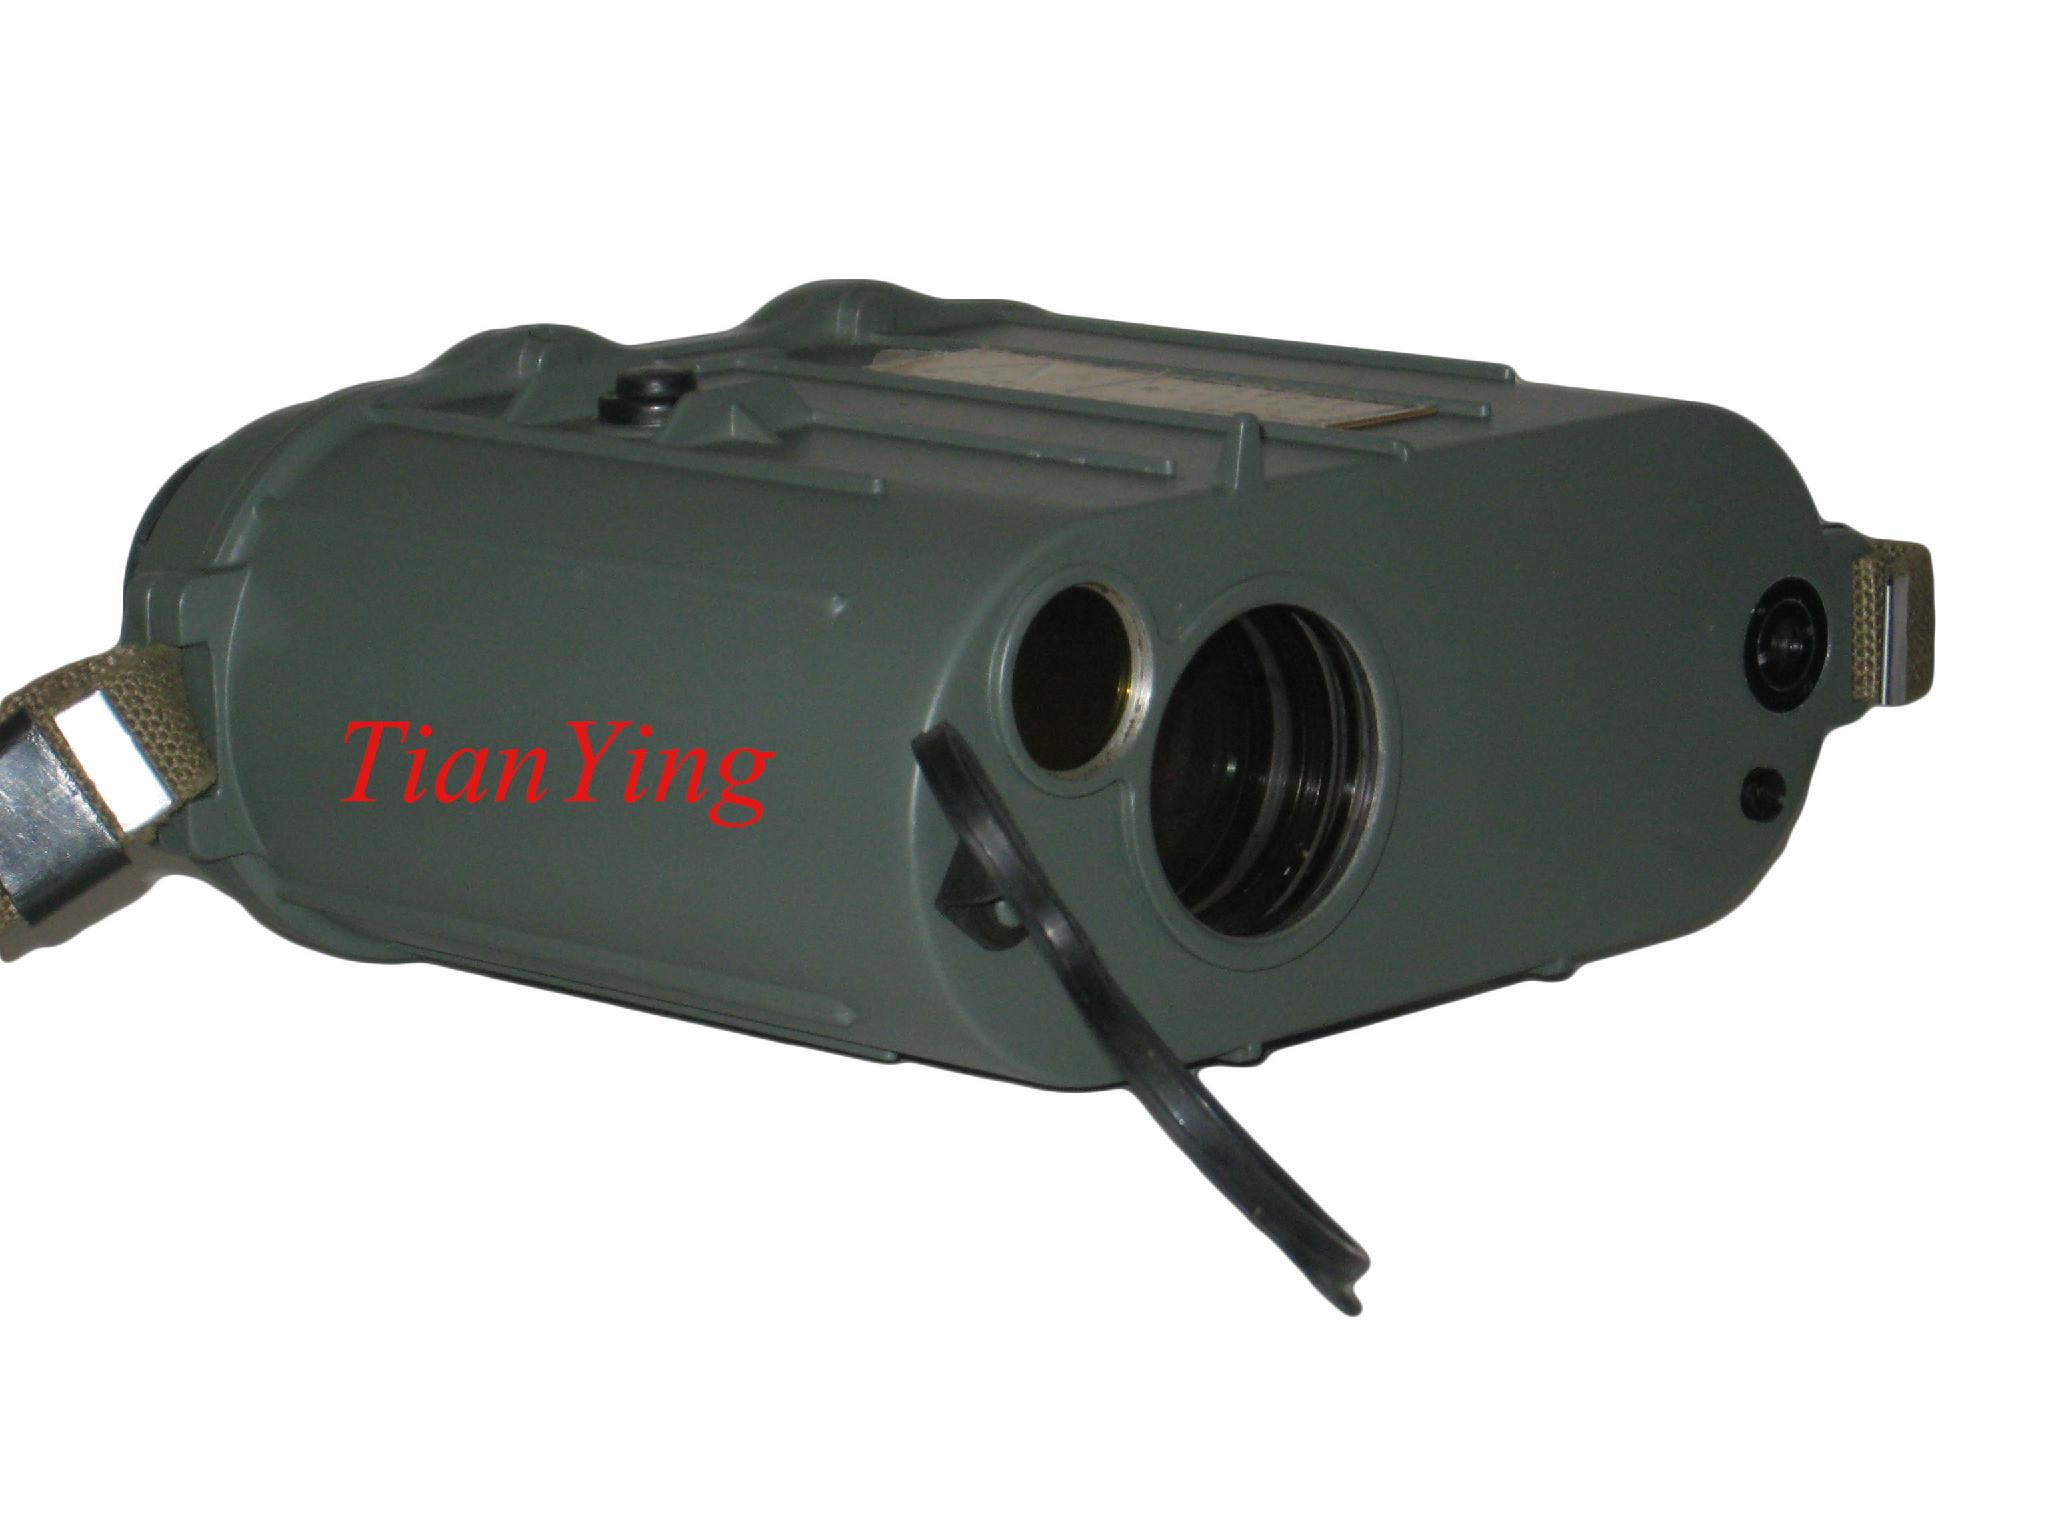 Military 0.5m Accuracy 10km Laser Range Finder Binoculars / Telescope